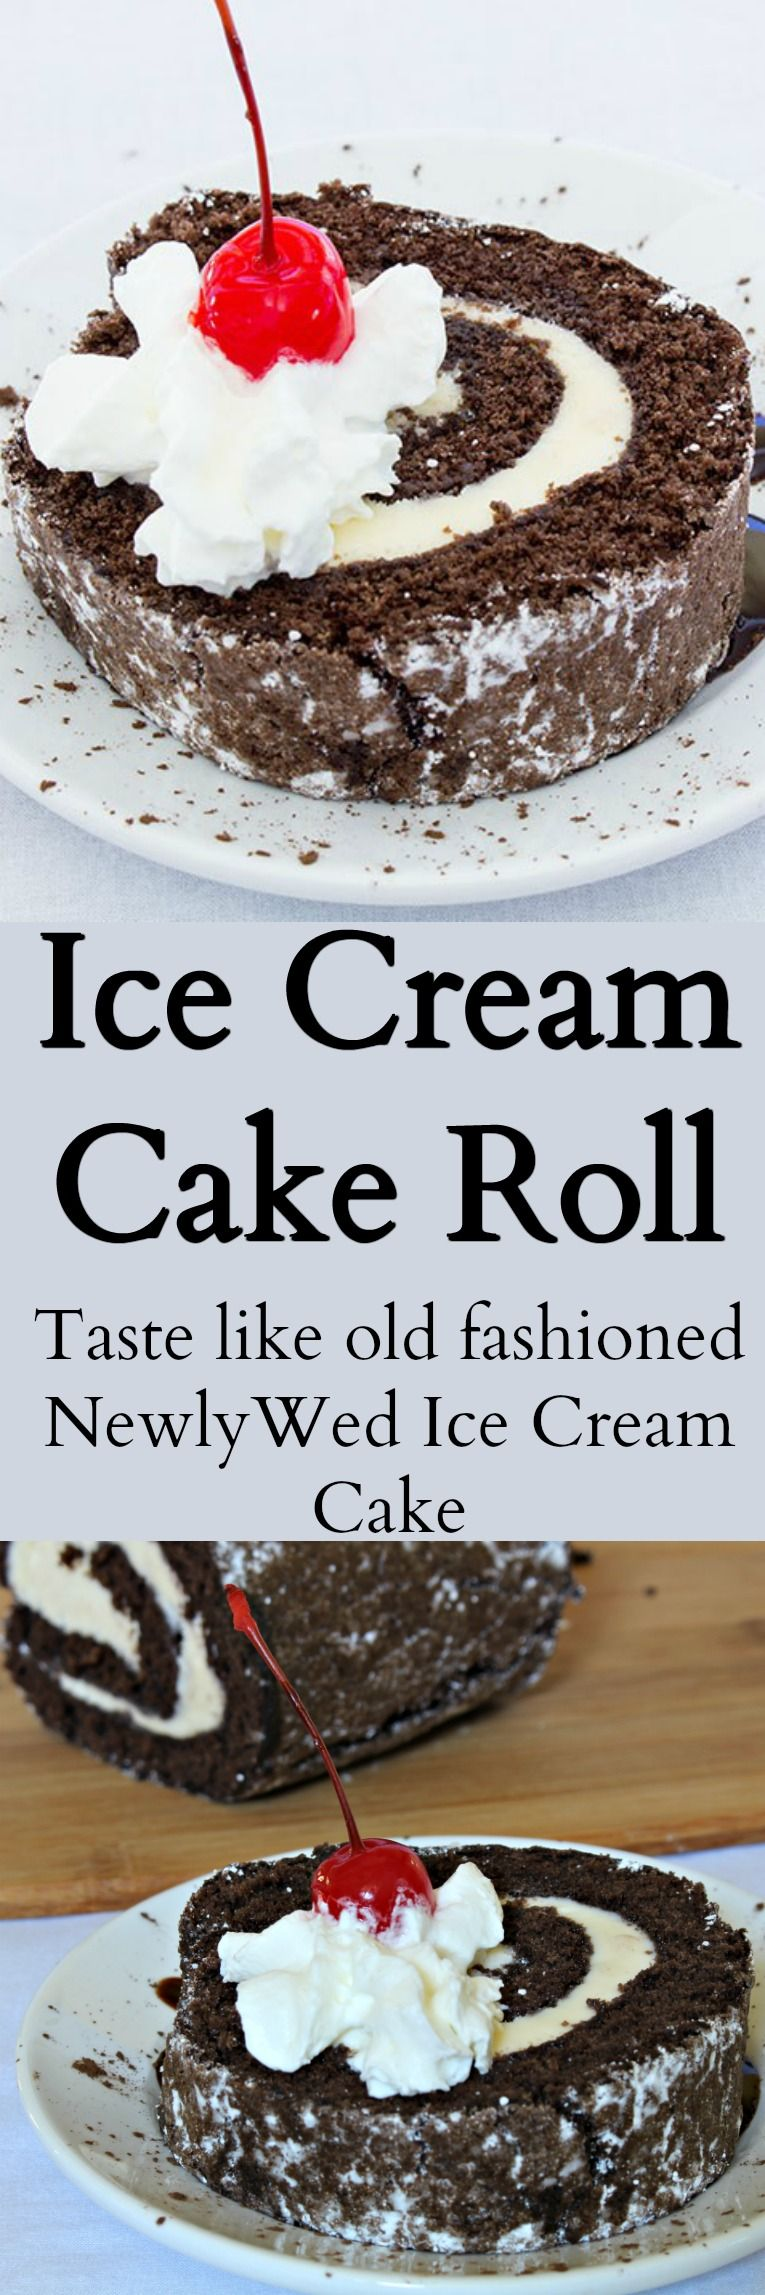 Ice Cream Cake Roll | Recipe